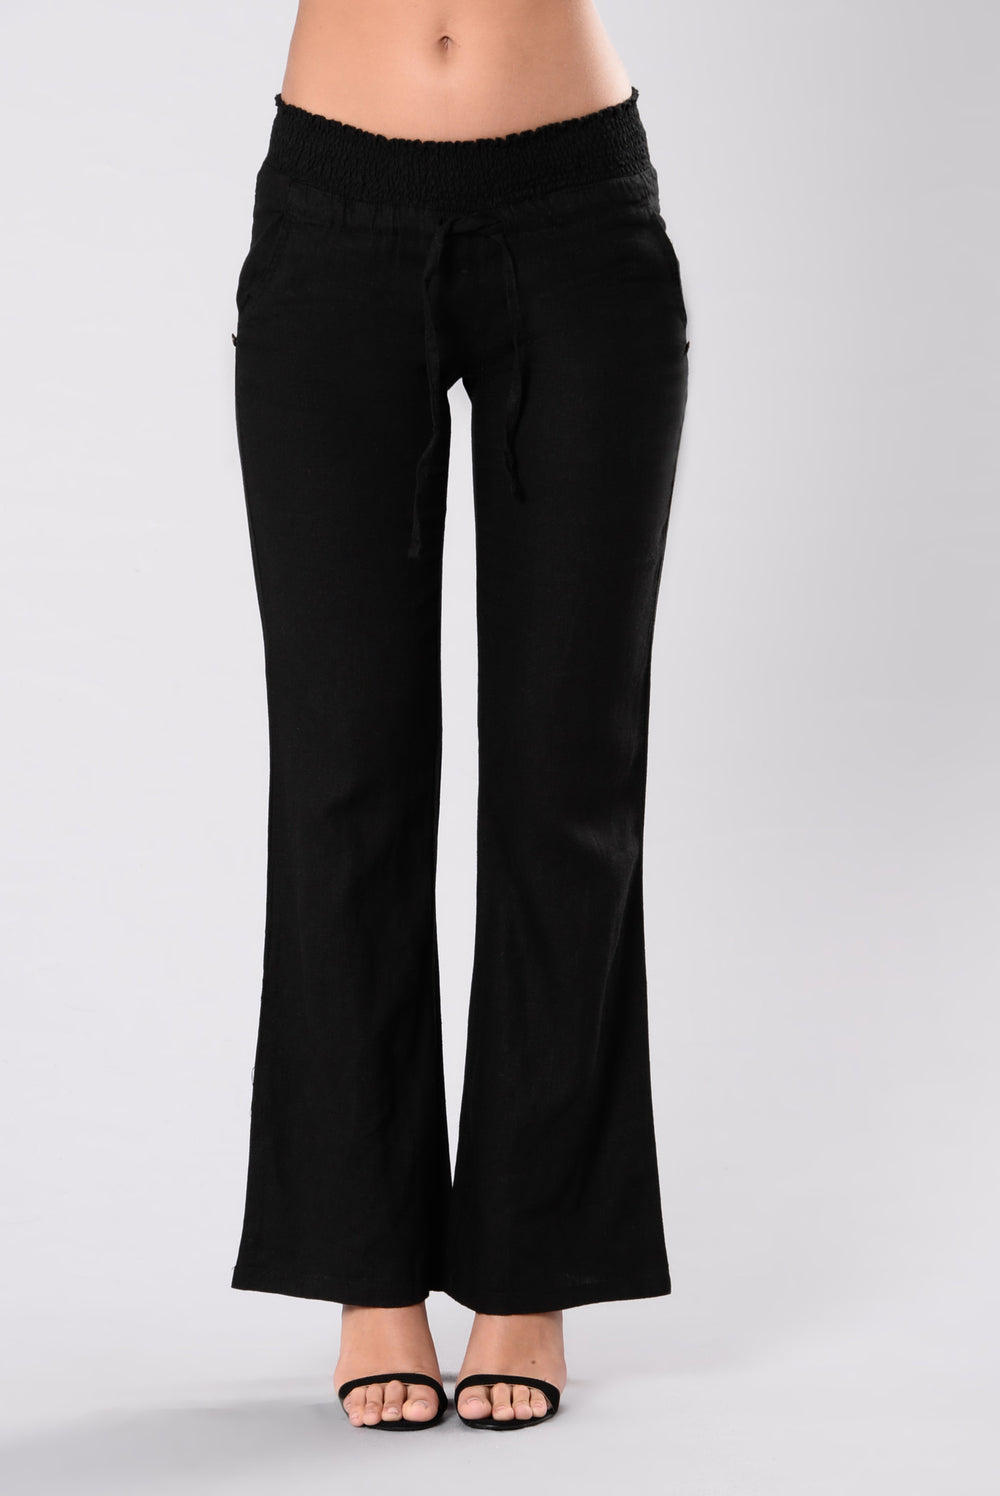 Casual Day Pants - Black